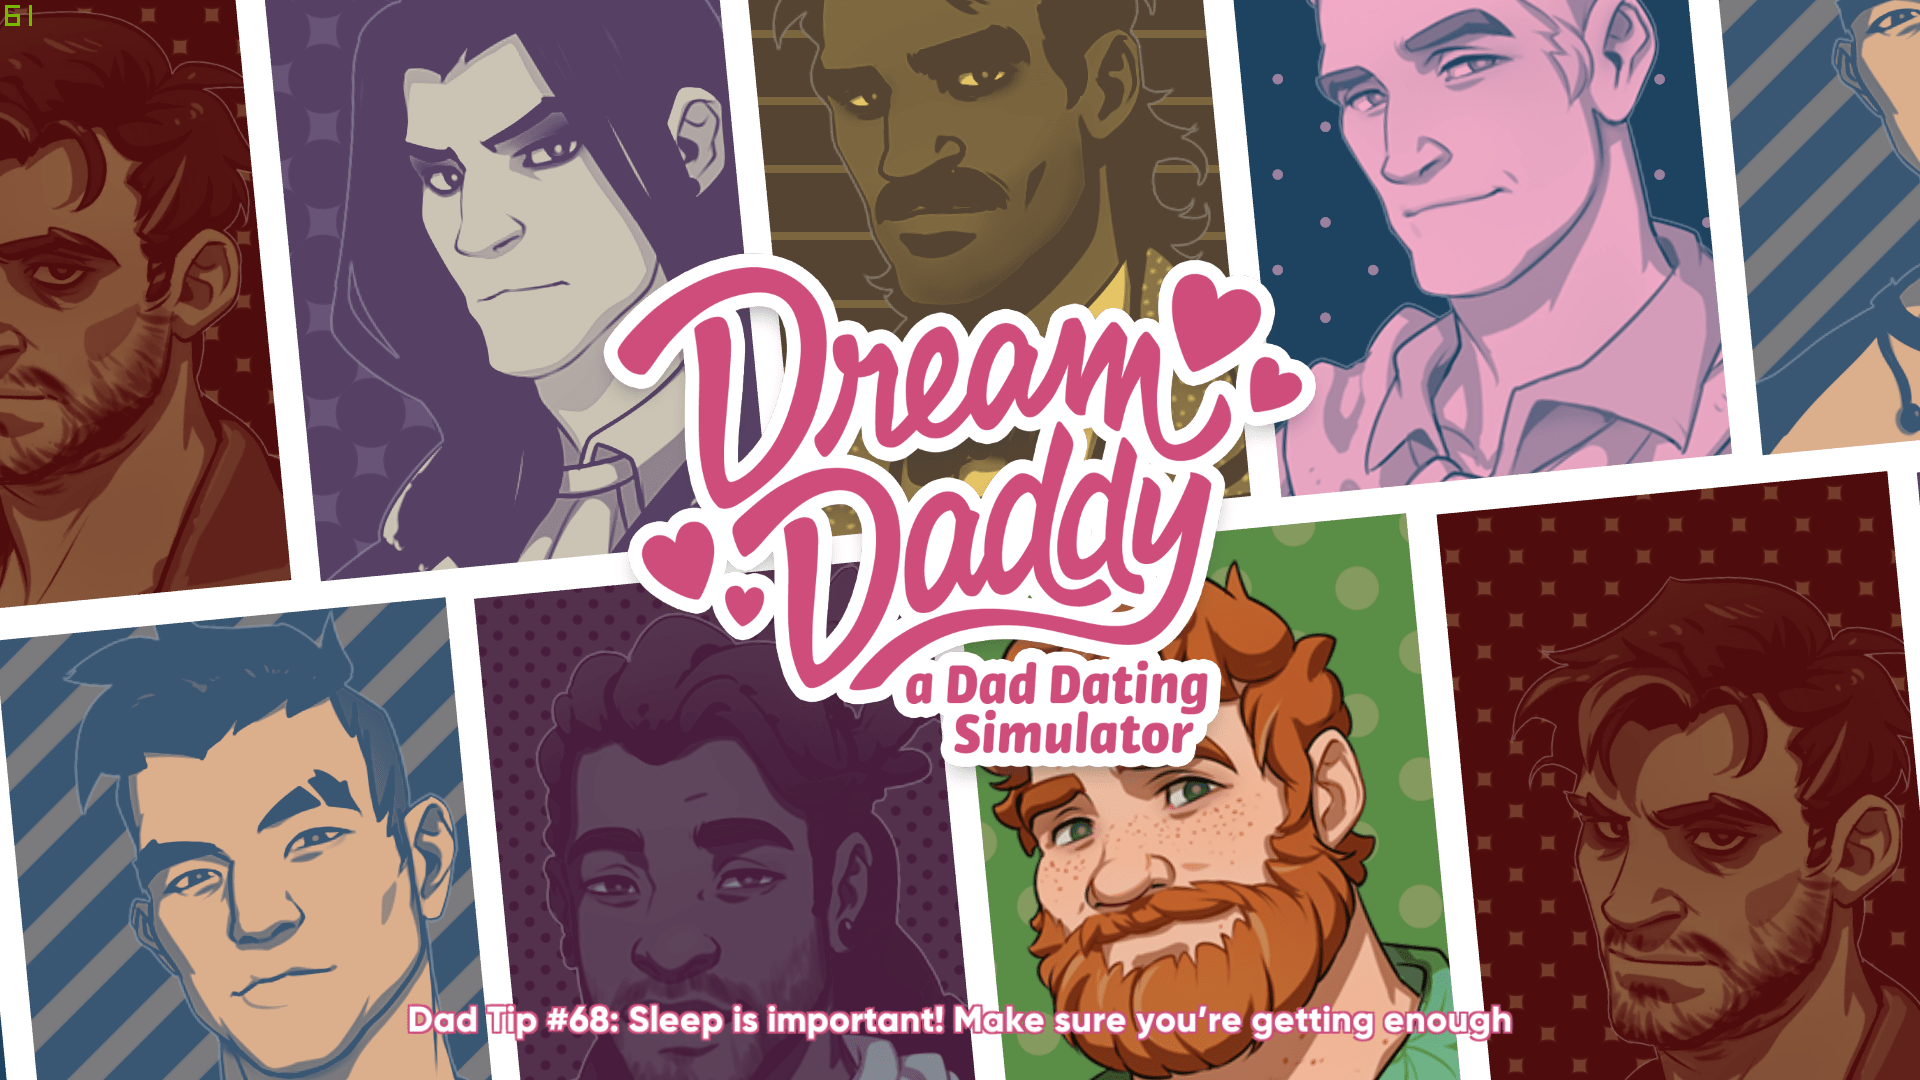 Daddy dating simulator horse girl